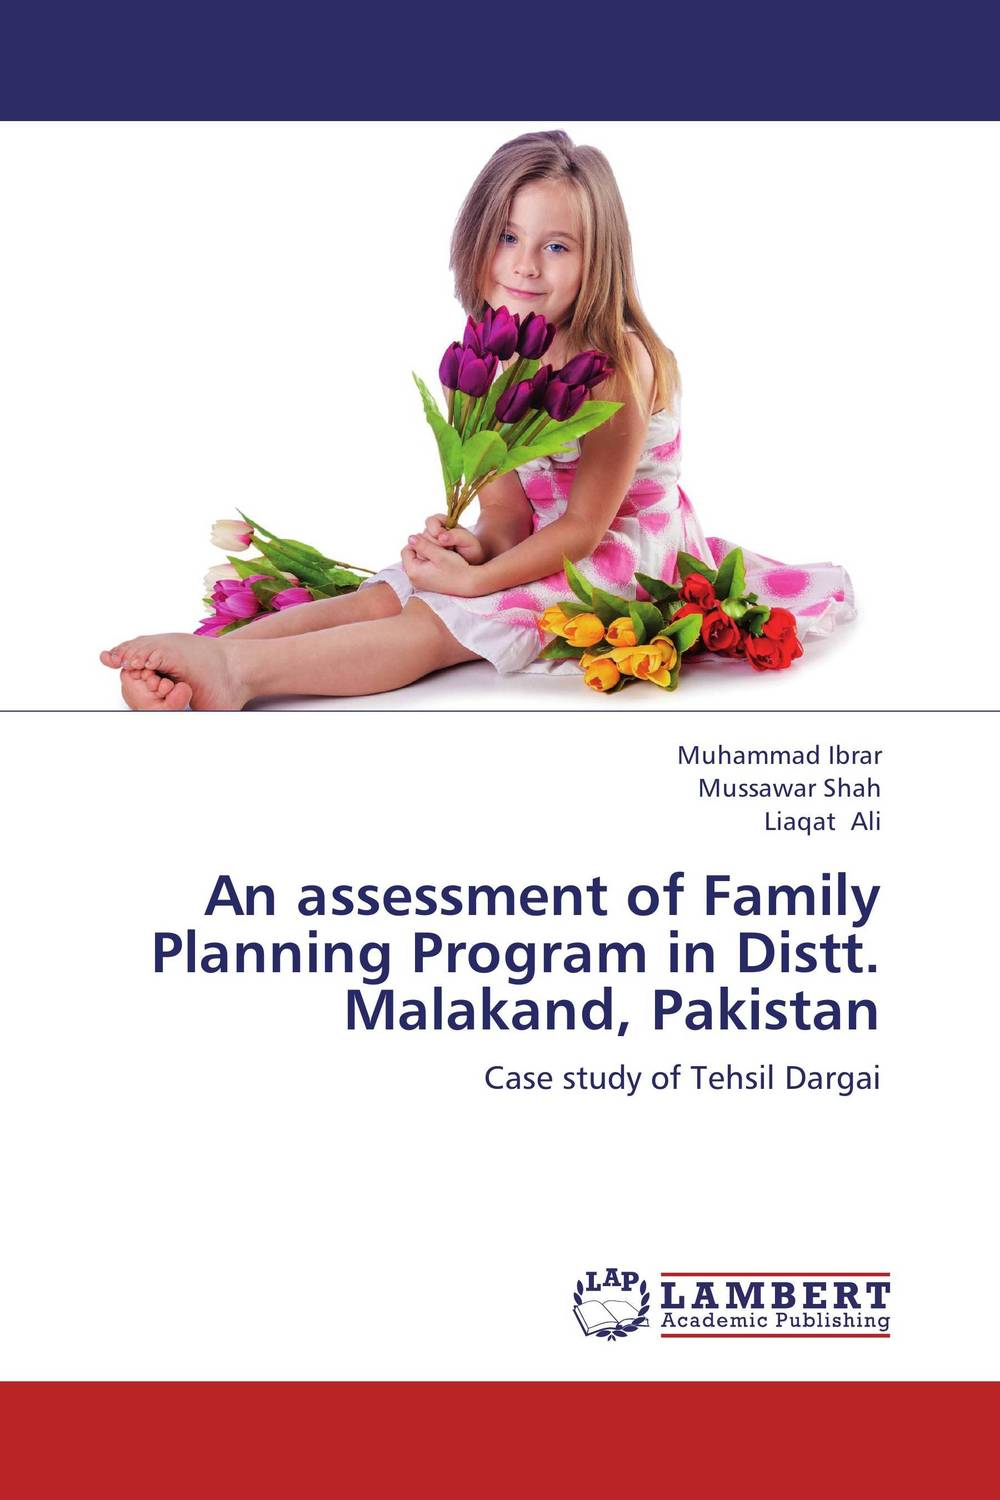 An assessment of Family Planning Program in Distt. Malakand, Pakistan family planning practices in two semi